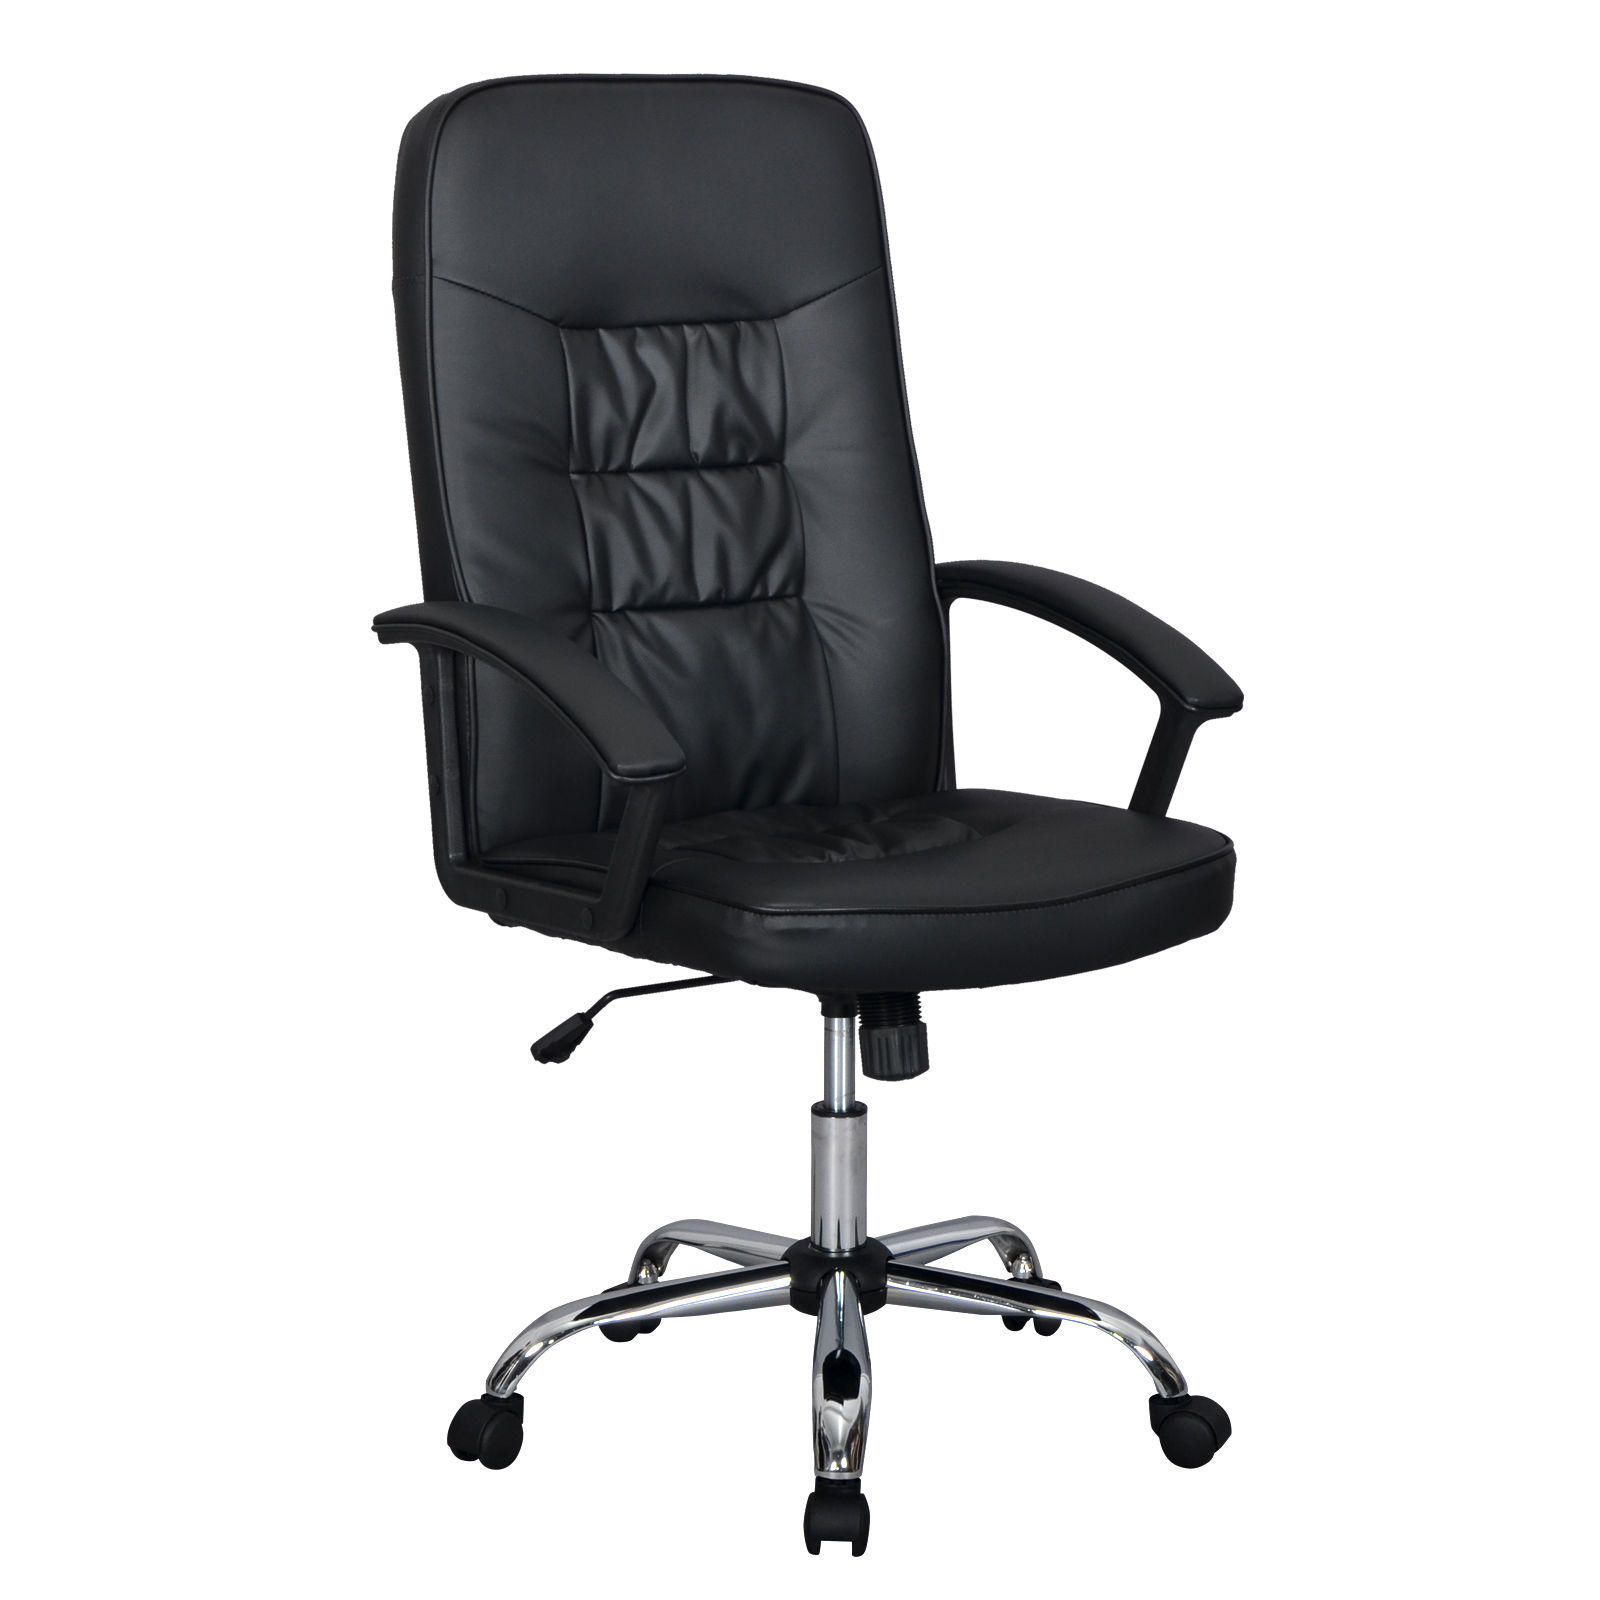 Black High Back Executive Office PU Leather Ergonomic Chair